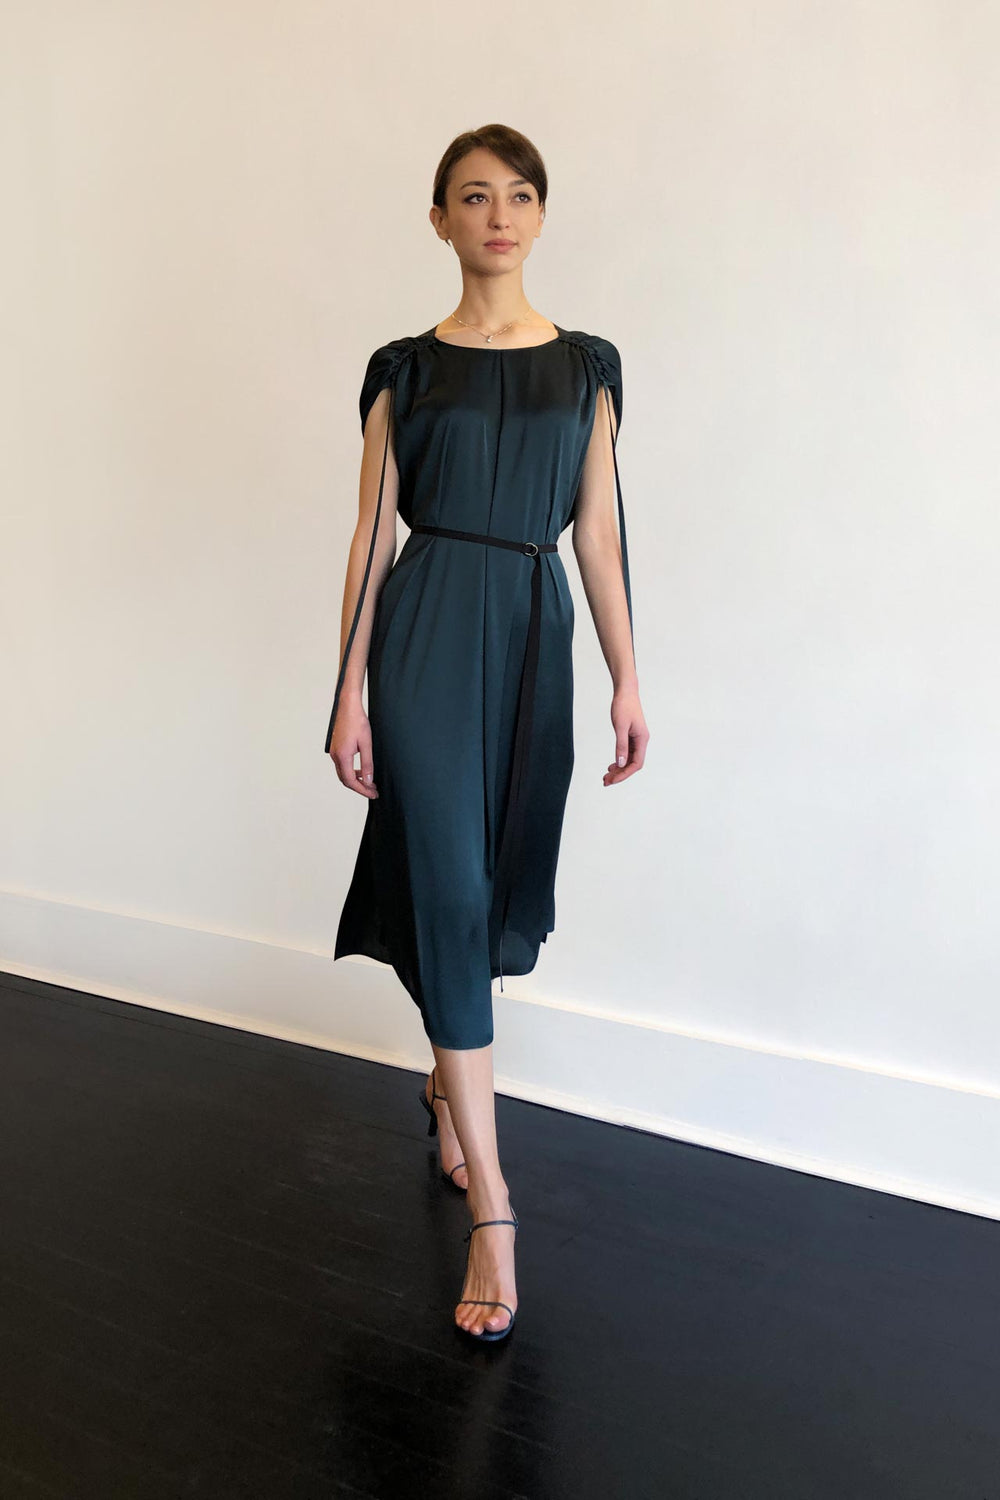 Fashion Designer CARL KAPP collection | Ocean Onesize Fits All cocktail dress Dark Green | Sydney Australia